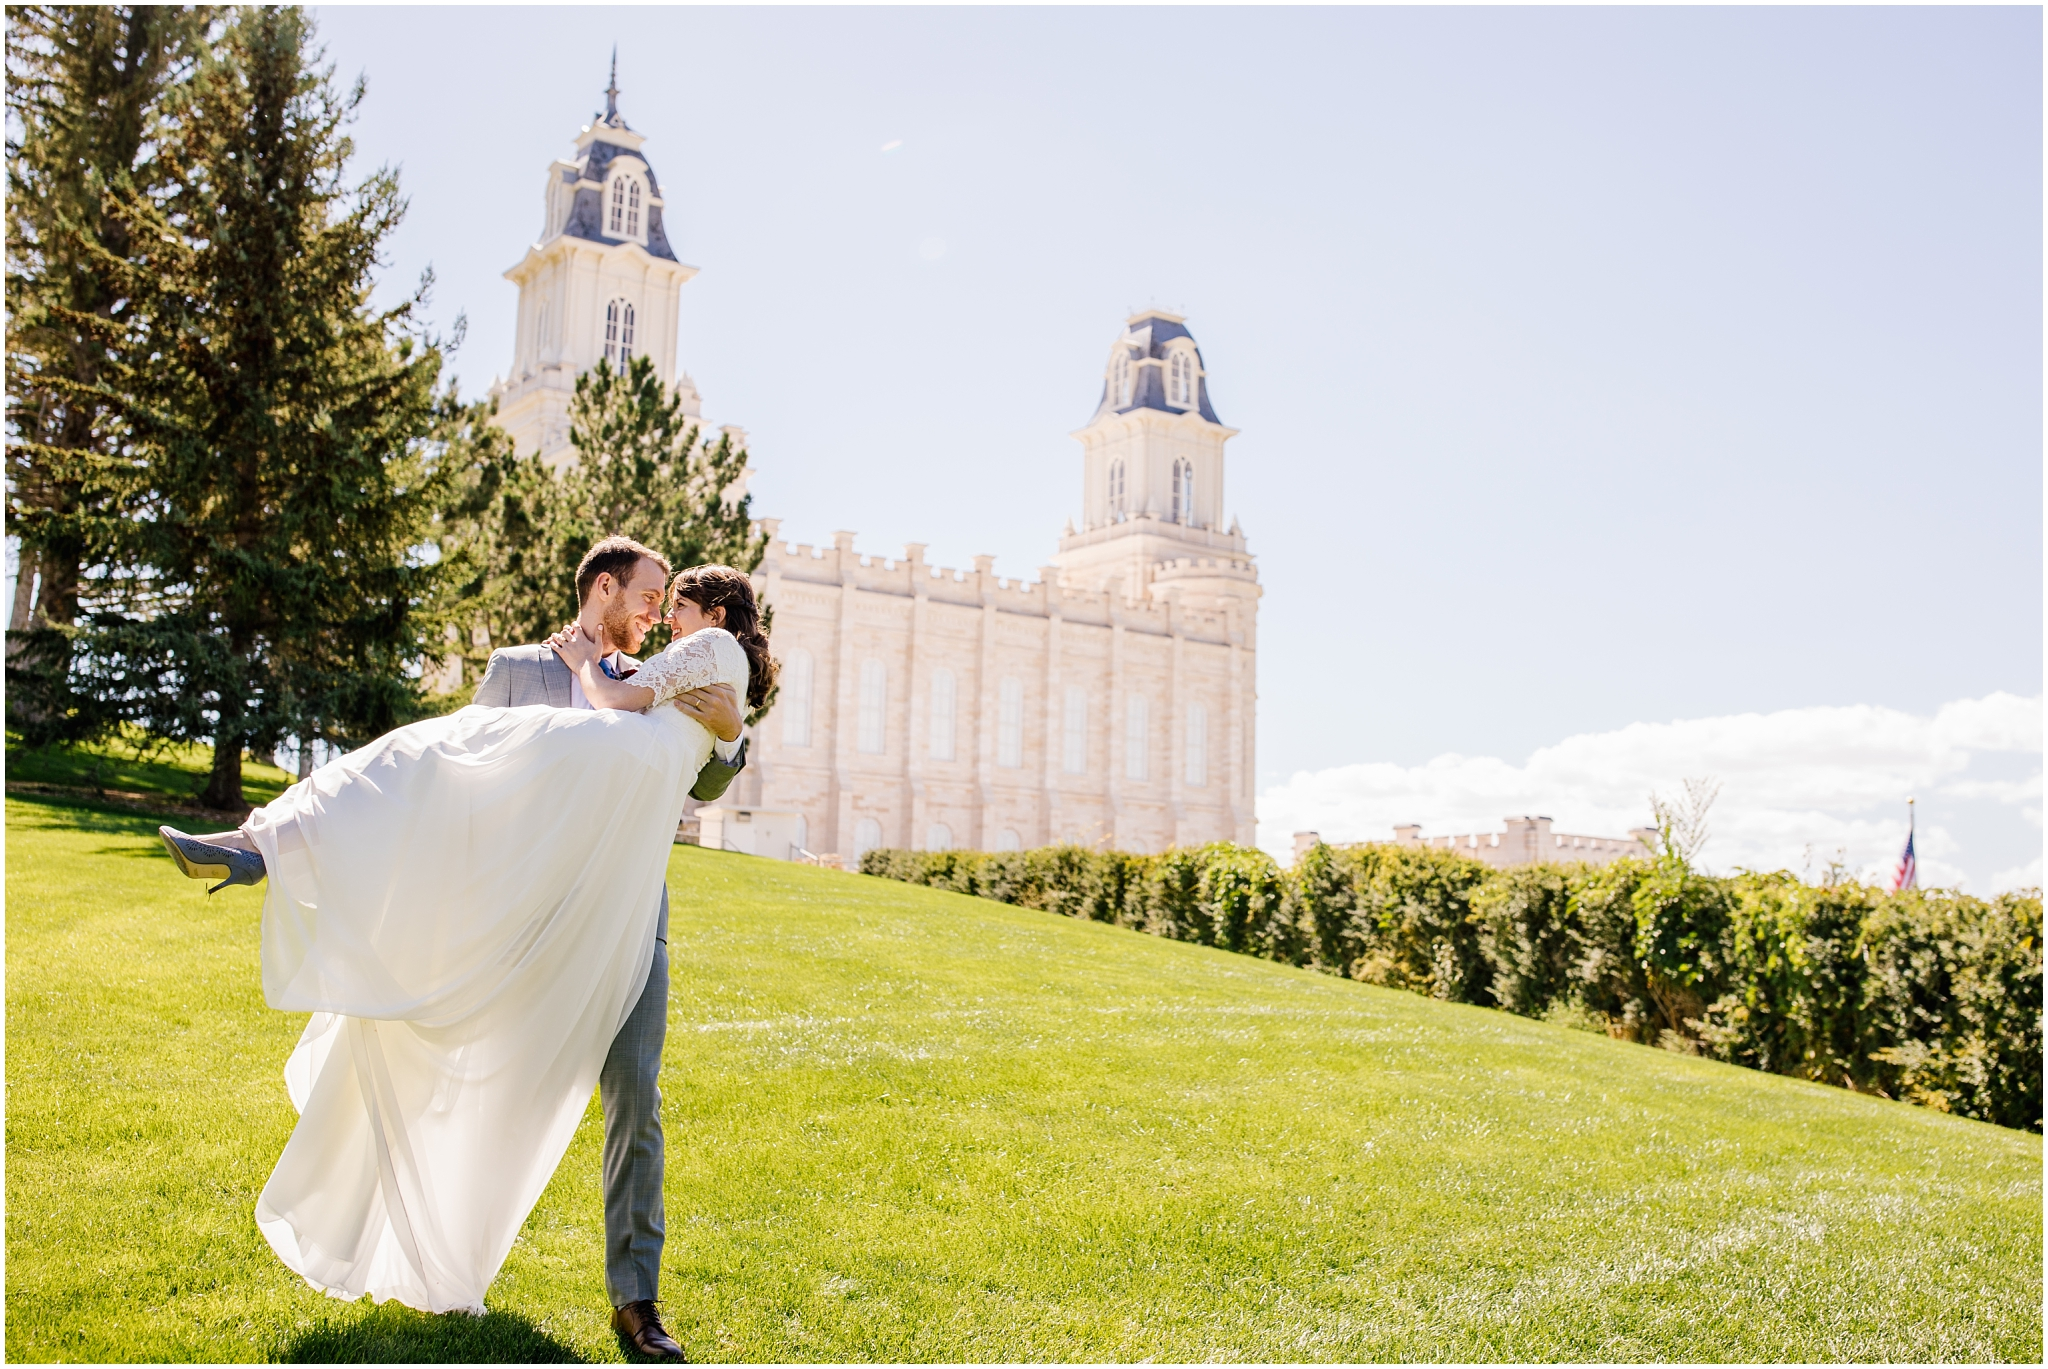 BrynneWinston-137_Lizzie-B-Imagery-Utah-Wedding-Photographer-Utah-County-Manti-Temple.jpg